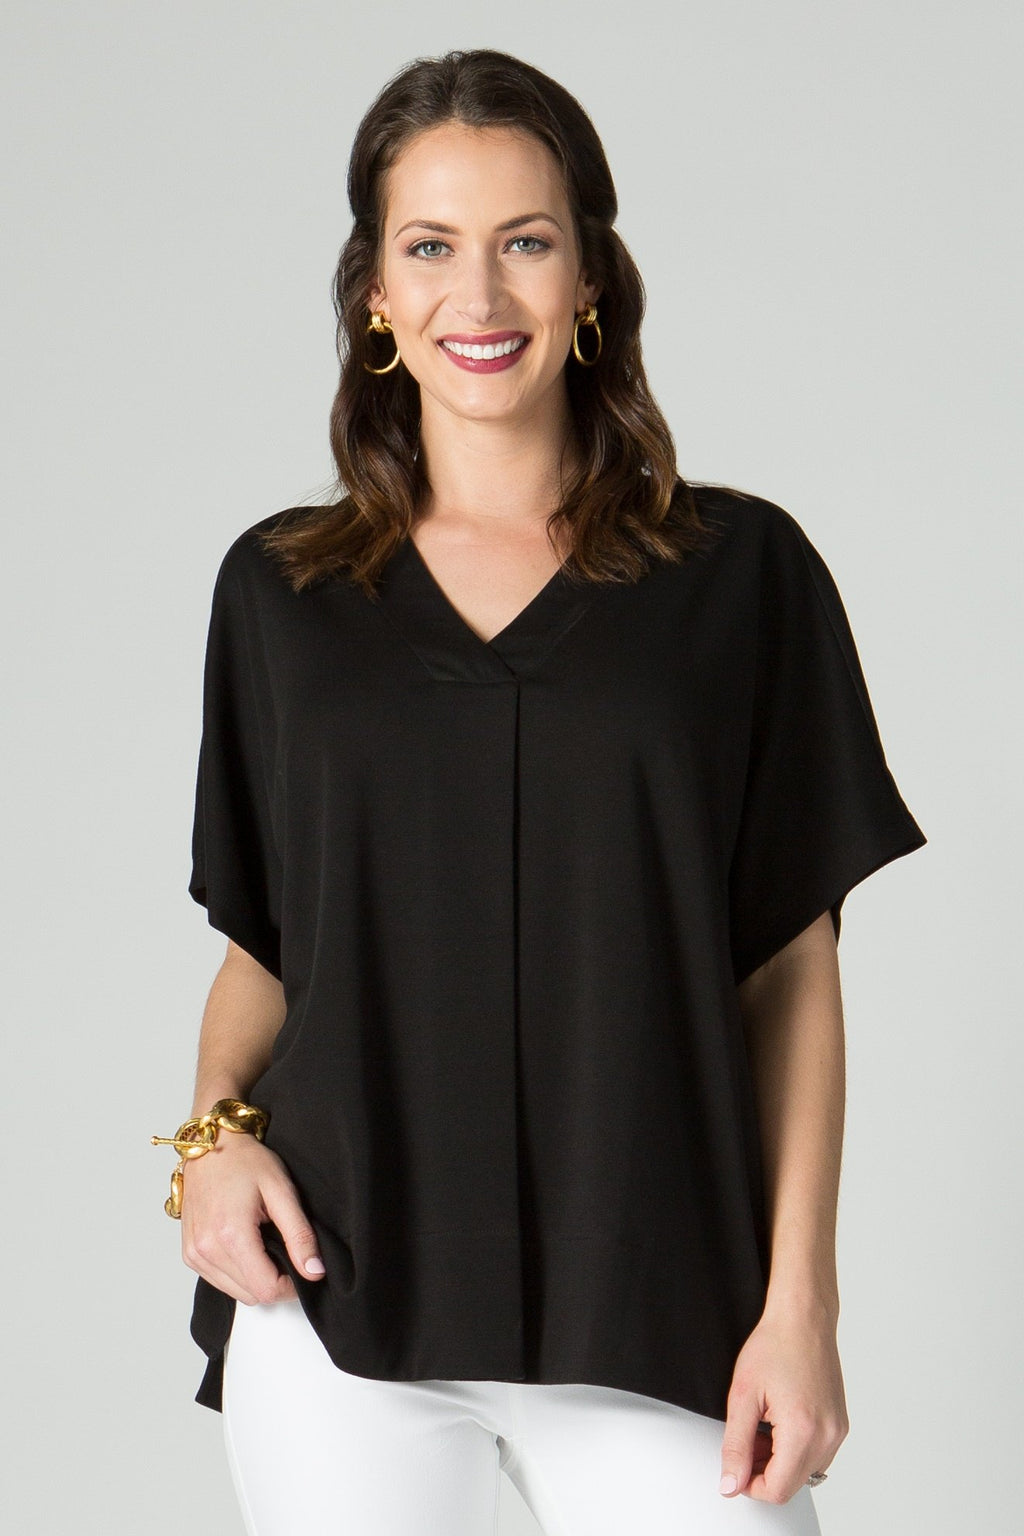 V Neck Oversize Square Top - New Orleans Knitwear